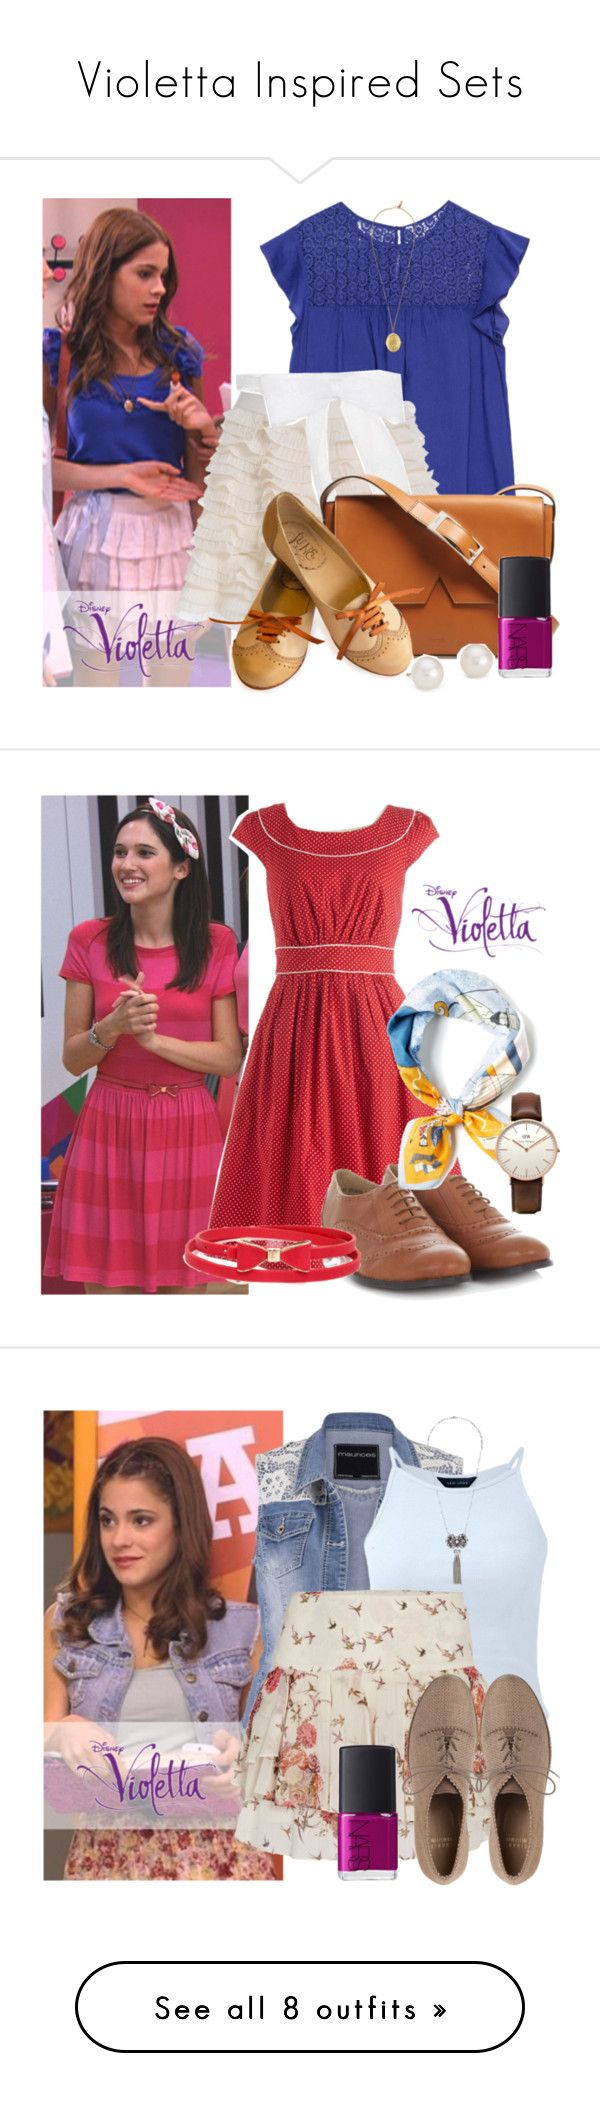 """""""Violetta Inspired Sets"""" by candygirllnm ❤ liked on Polyvore featuring disney, violetta, Zara, Lulu Frost, Honor, Vince, Blue Nile, NARS Cosmetics, women's clothing and women"""